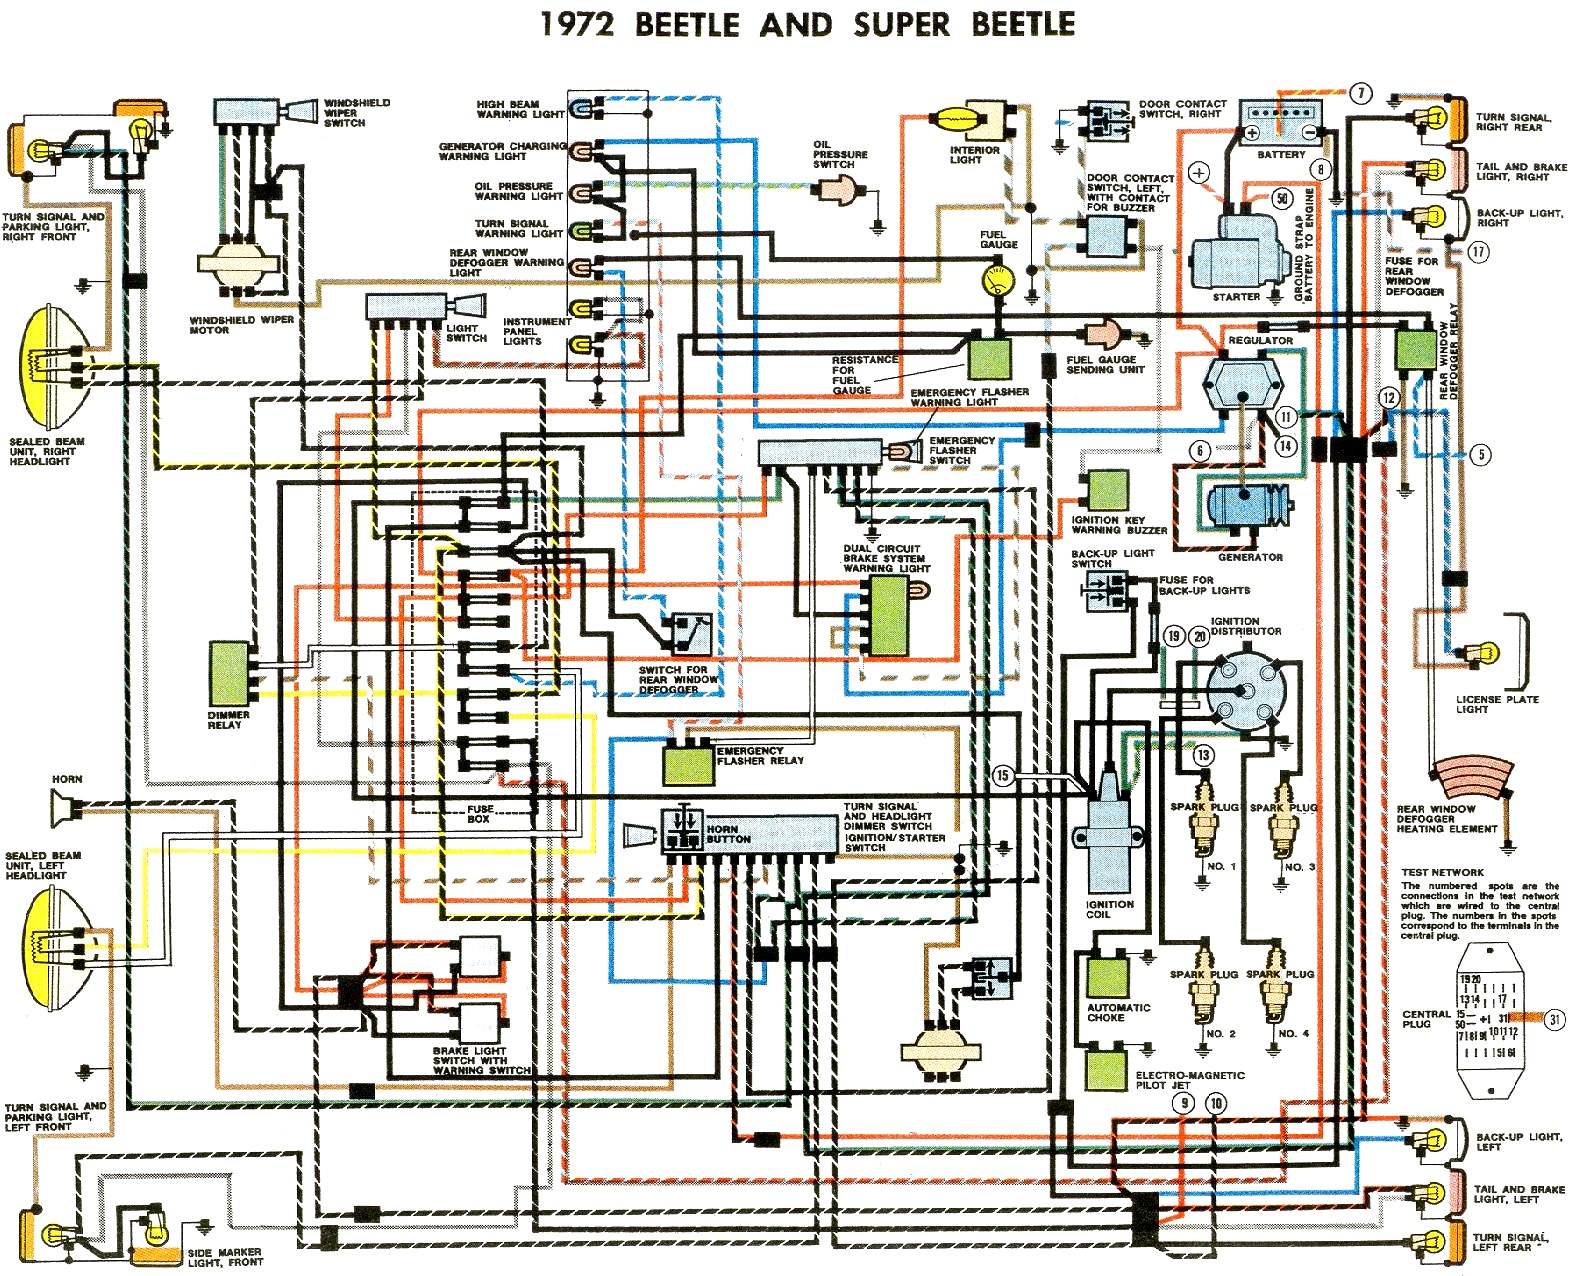 1972 Vw Wiring Diagram - Schema Wiring Diagram  Vw Bug Wiring Diagrams on 1972 vw beetle fuse box diagram, 1966 chevrolet impala wiring diagram, 12 volt switch wiring diagram, 1966 chevy impala wiring diagram, vw kit car wiring diagram, 1966 ford wiring diagram, 1965 vw wiring diagram, 1966 porsche wiring diagram, 67 vw wiring diagram, 1972 vw beetle engine diagram, 69 beetle wiring diagram, vw engine wiring diagram, 1966 mustang wiring diagram, 1968 vw beetle engine diagram, vw beetle wiring diagram, classic beetle wiring diagram, 1966 pontiac gto wiring diagram, 1966 corvette wiring diagram, 1974 super beetle wiring diagram, 1956 vw wiring diagram,